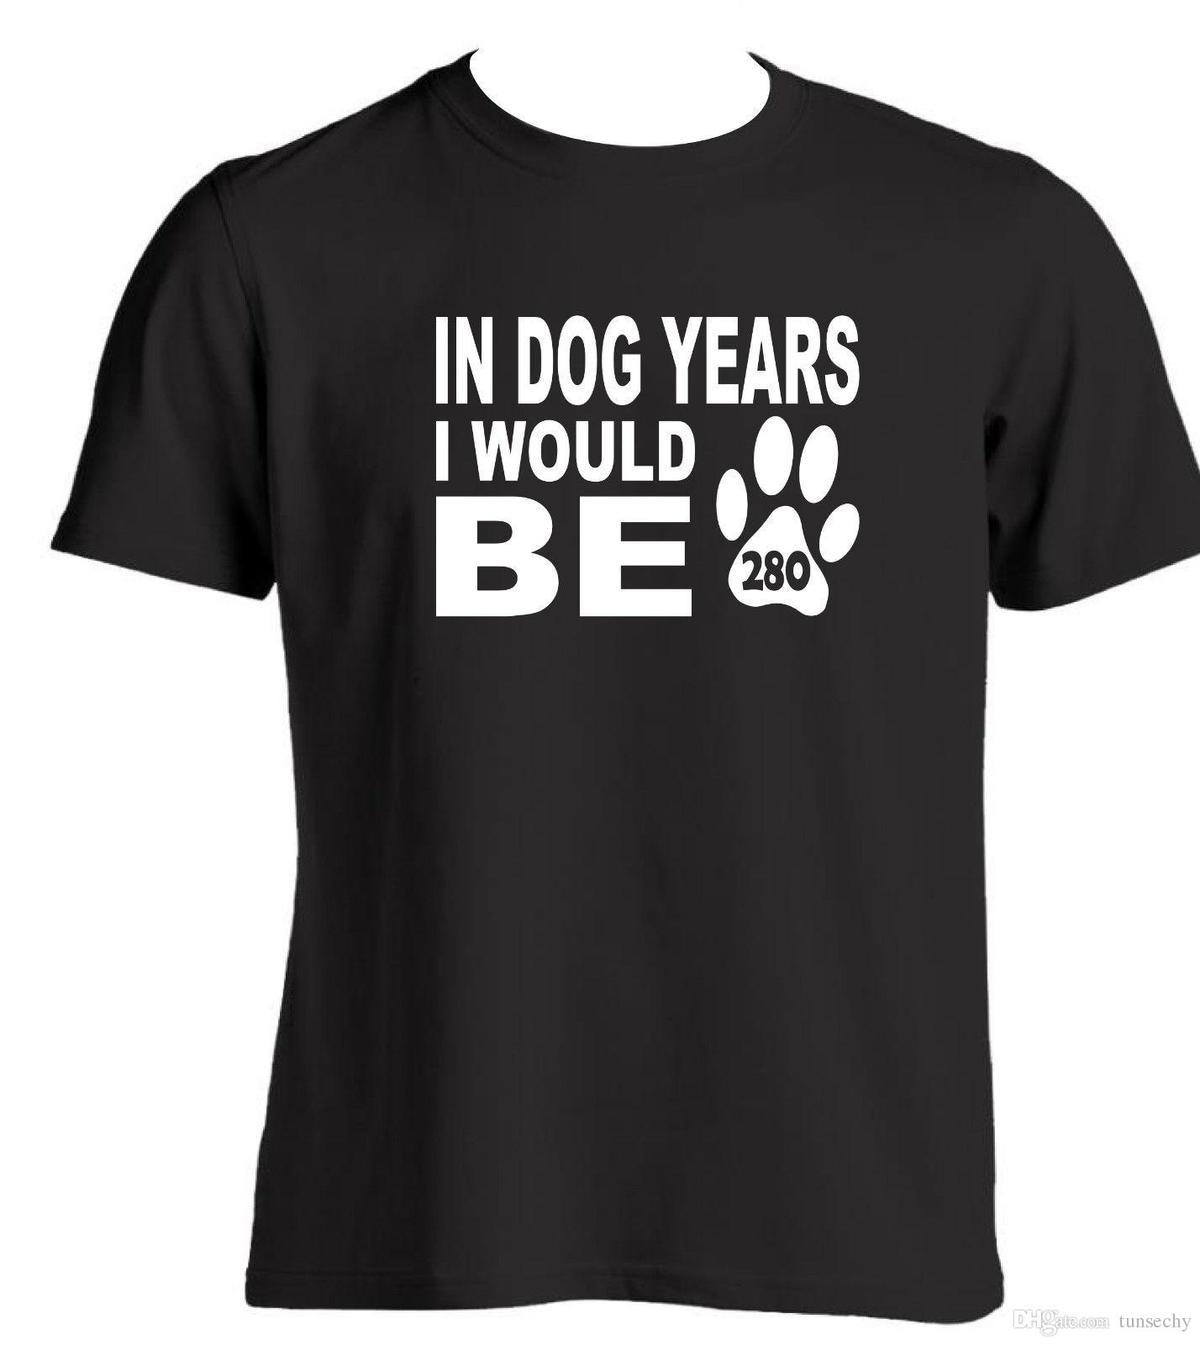 40th Birthday Gift Ideas For Men Novelty T Shirt Present 40 Years This Shirts Best From Jie64 1467